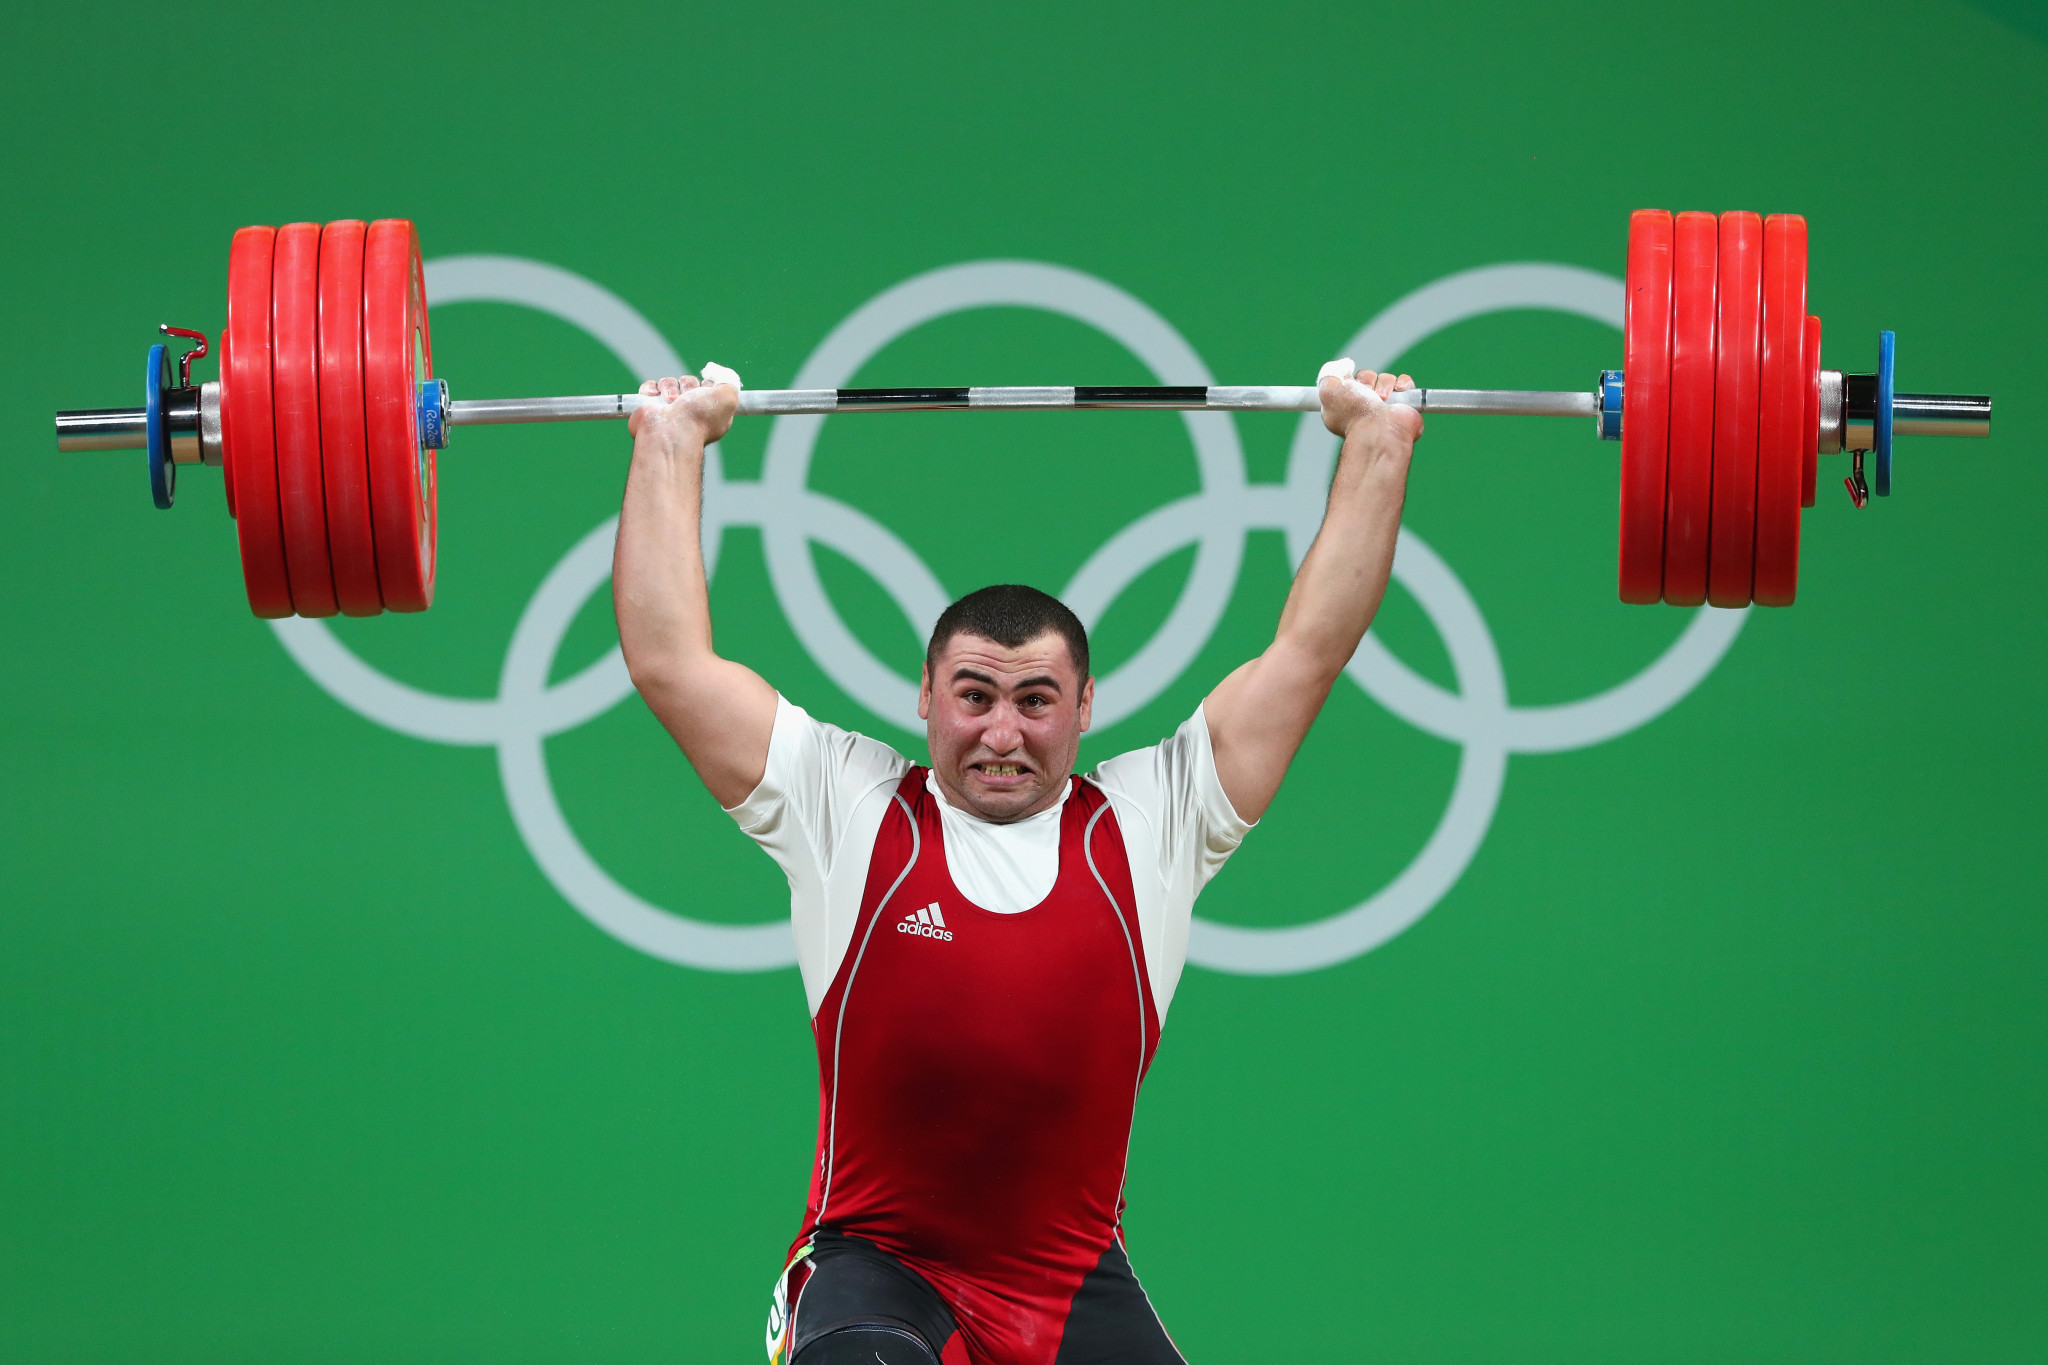 Rio 2016 Olympian Simon Martirosyan was part of a good day for Armenia ©Getty Images